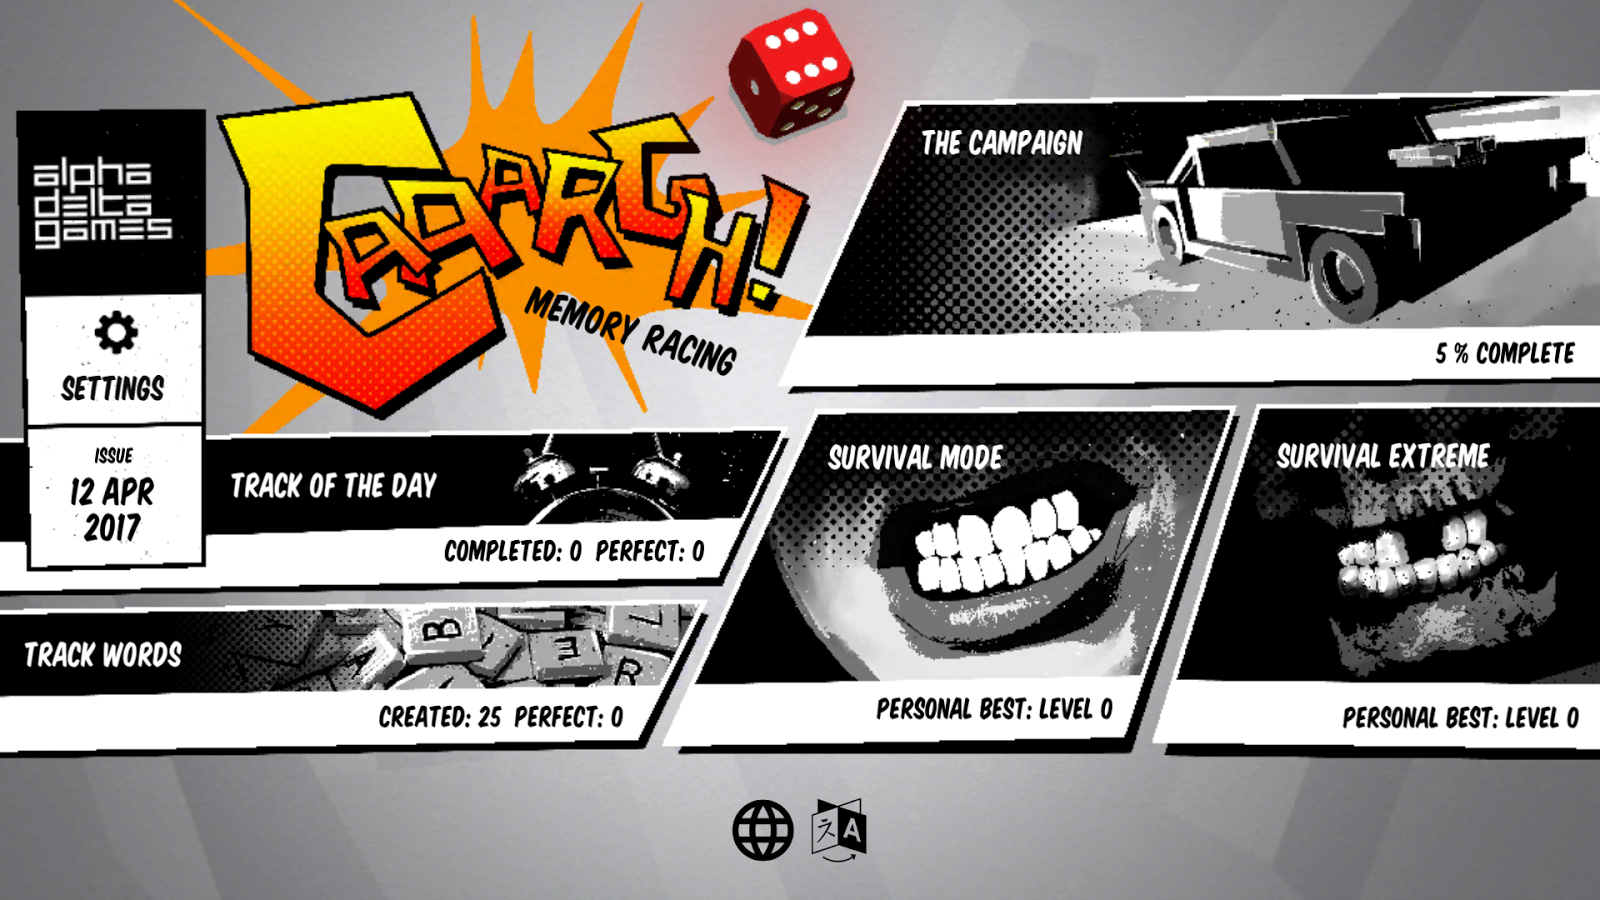 CAAARGH! A Memory Racing Game- screenshot